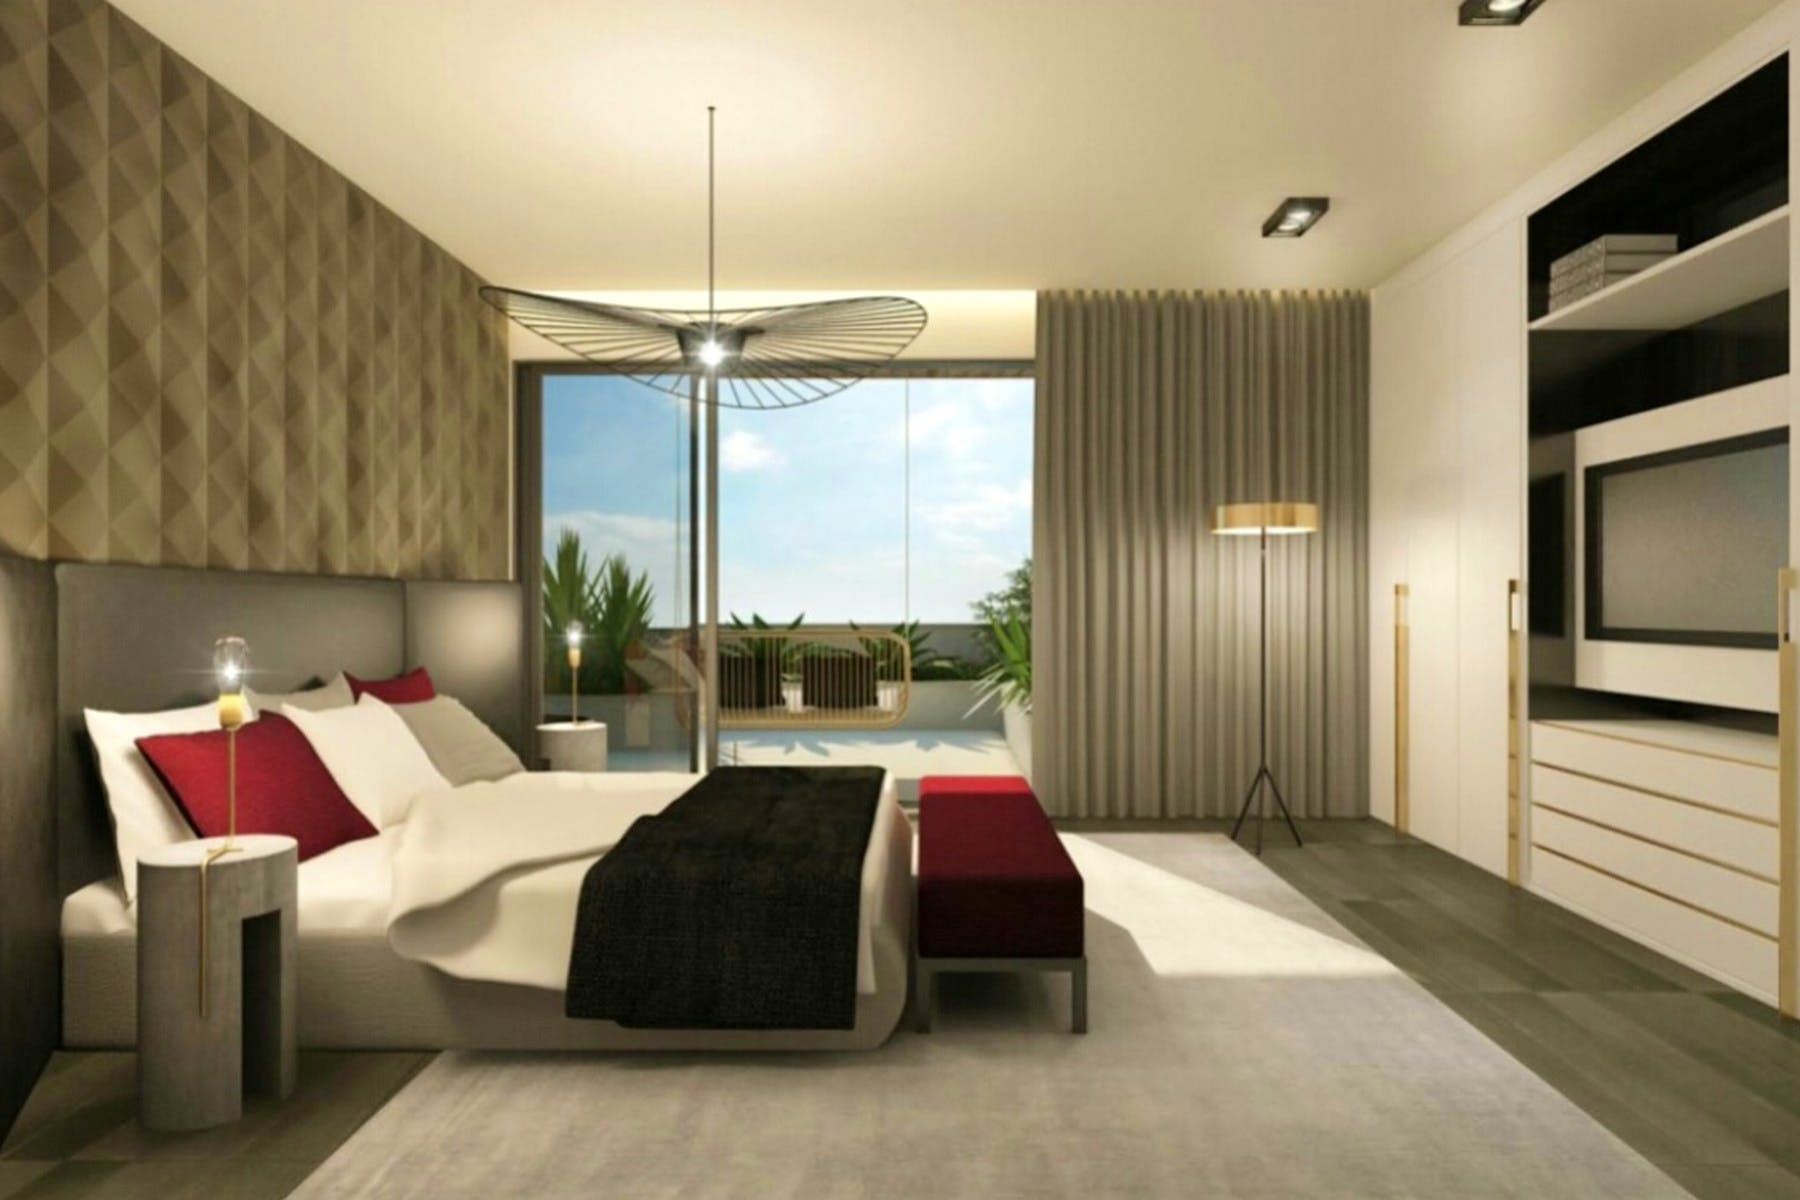 3D interior visualization of spacious bedroom with sea view